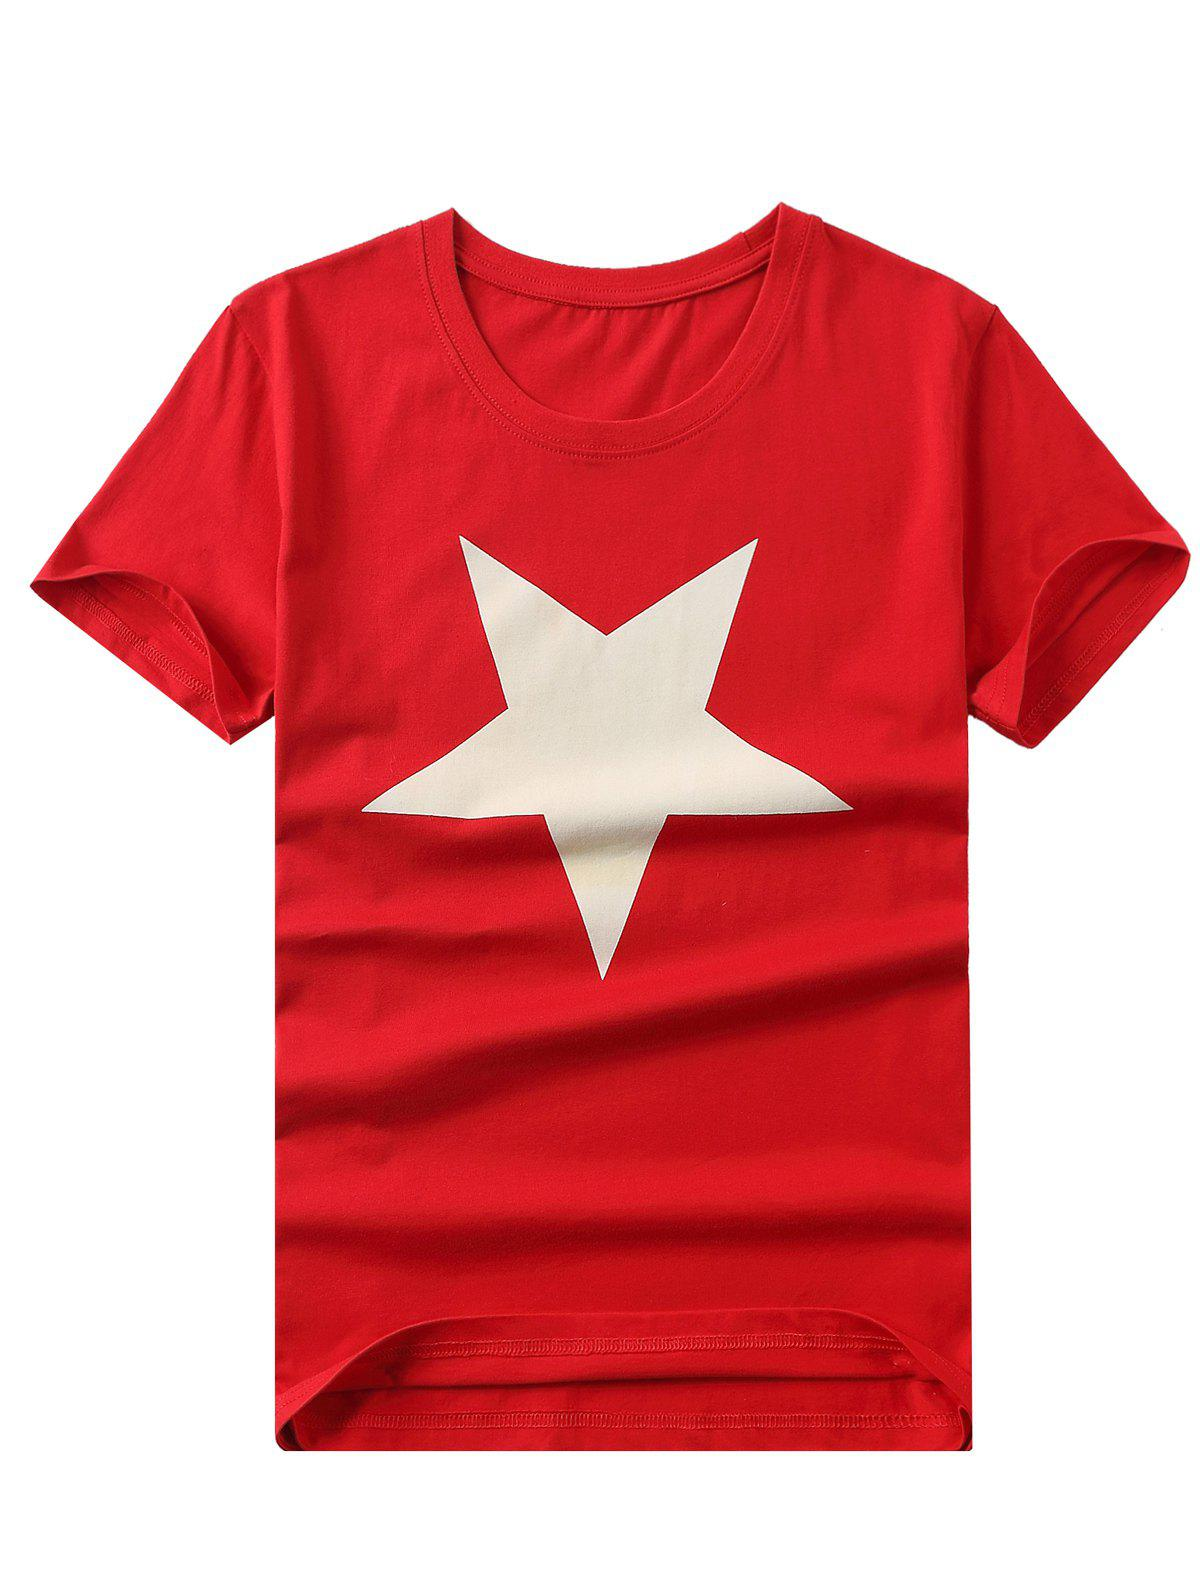 Brief Style Star Print Round Neck Short Sleeves Tee For Men - RED 4XL